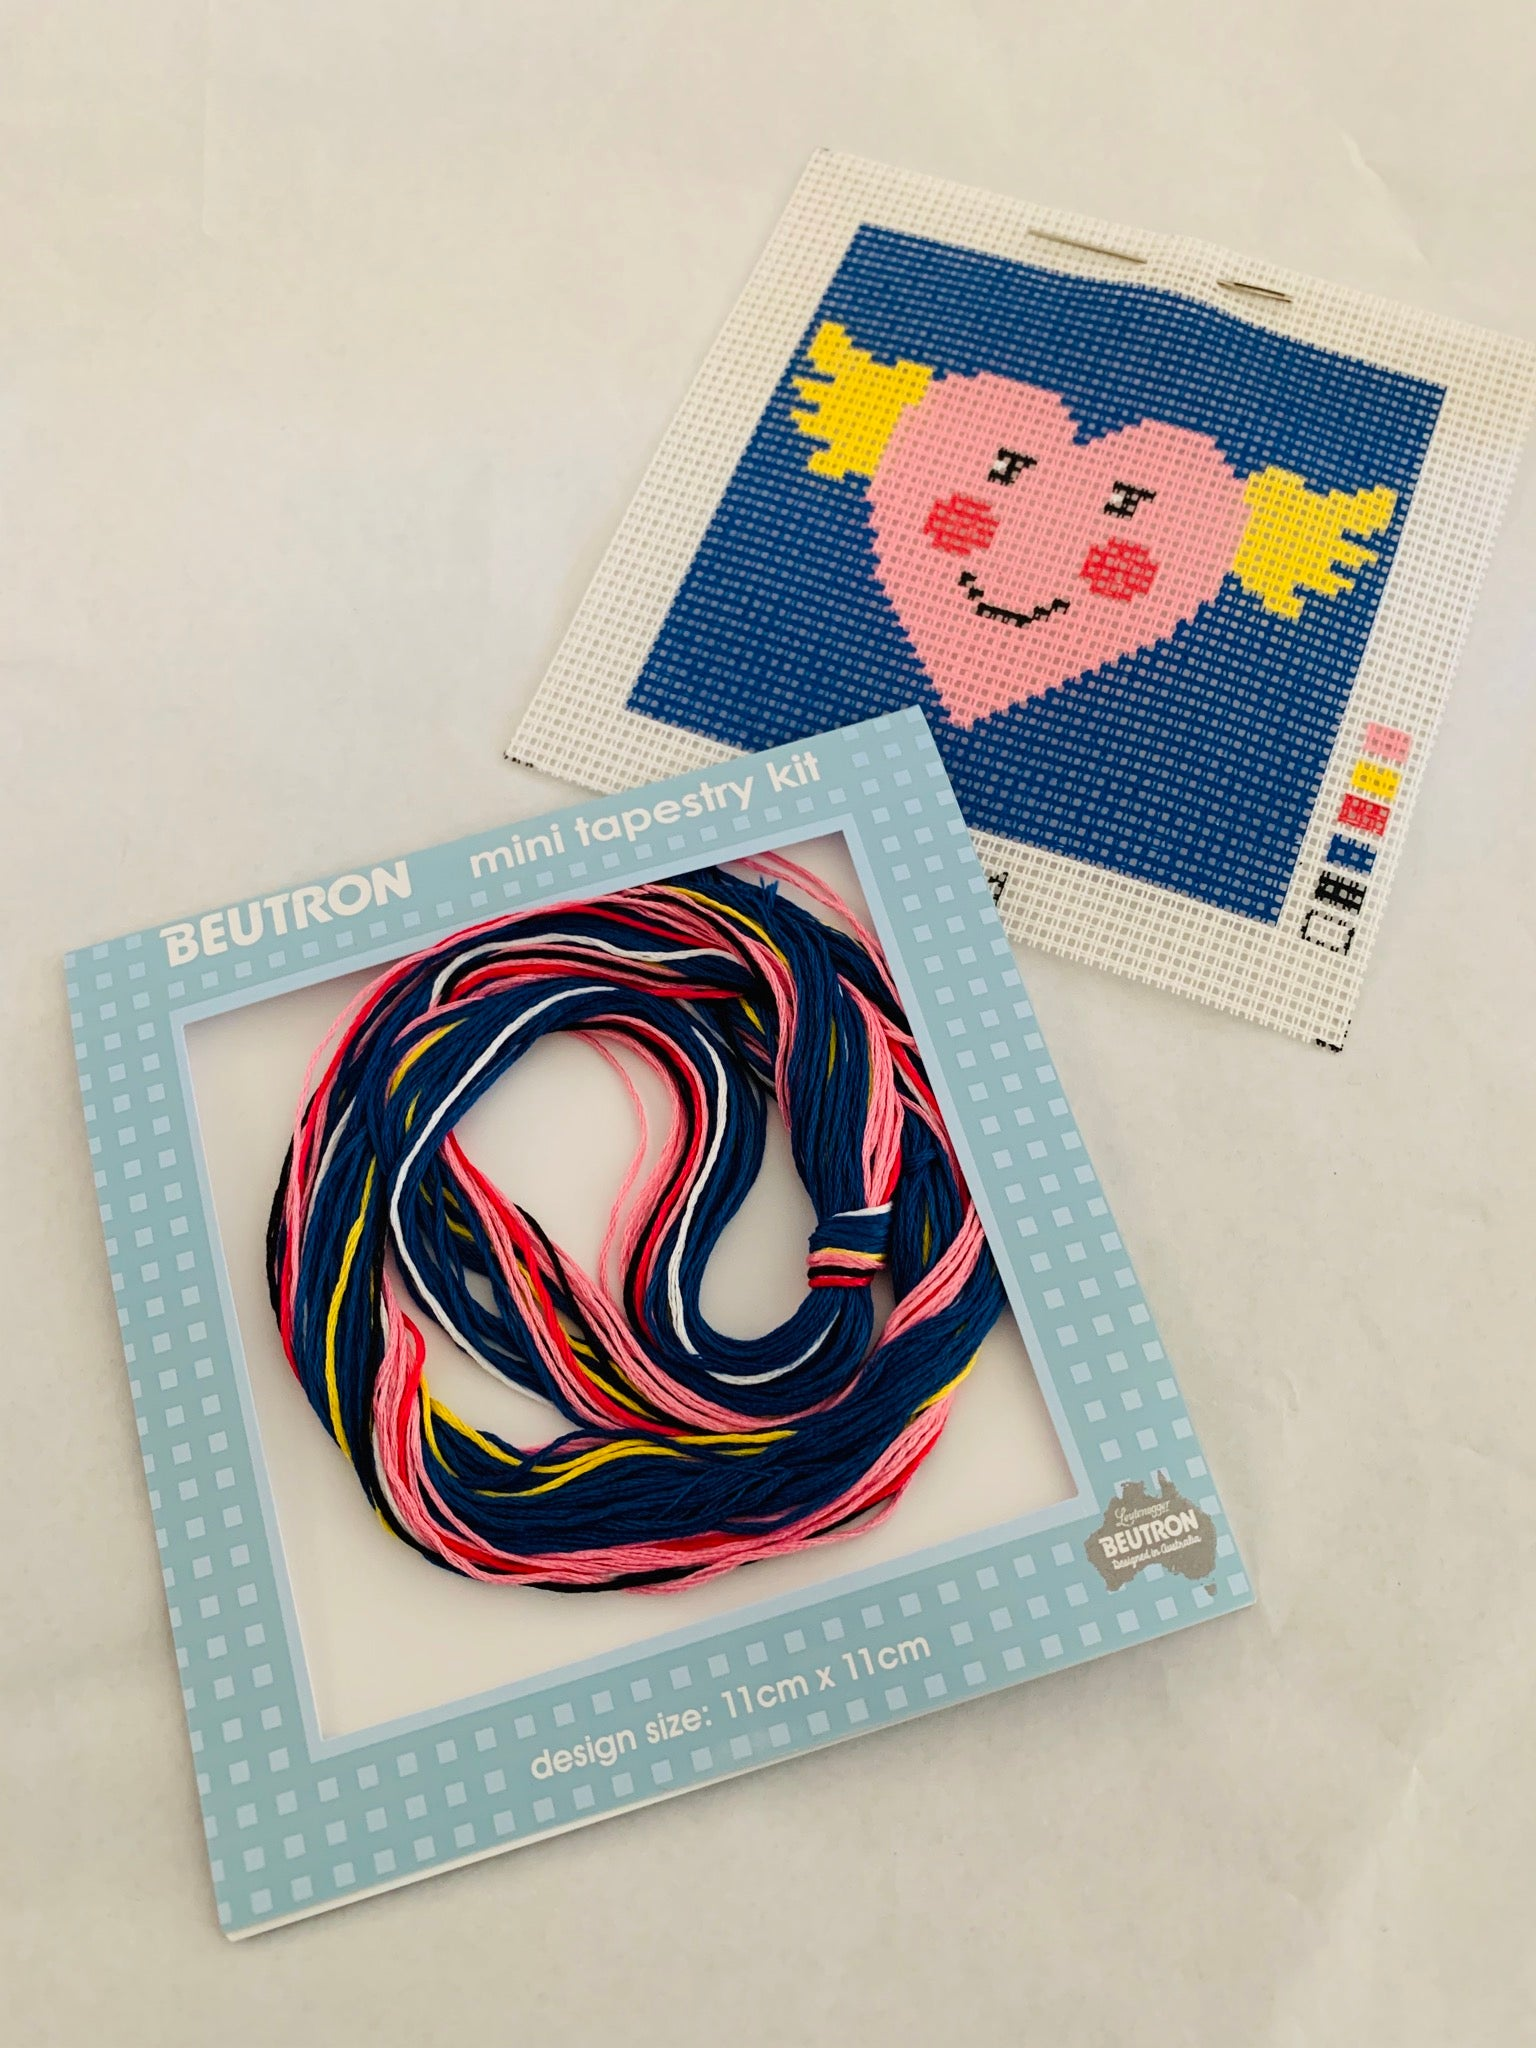 Beutron Mini Tapestry Kit: Heart with Wings